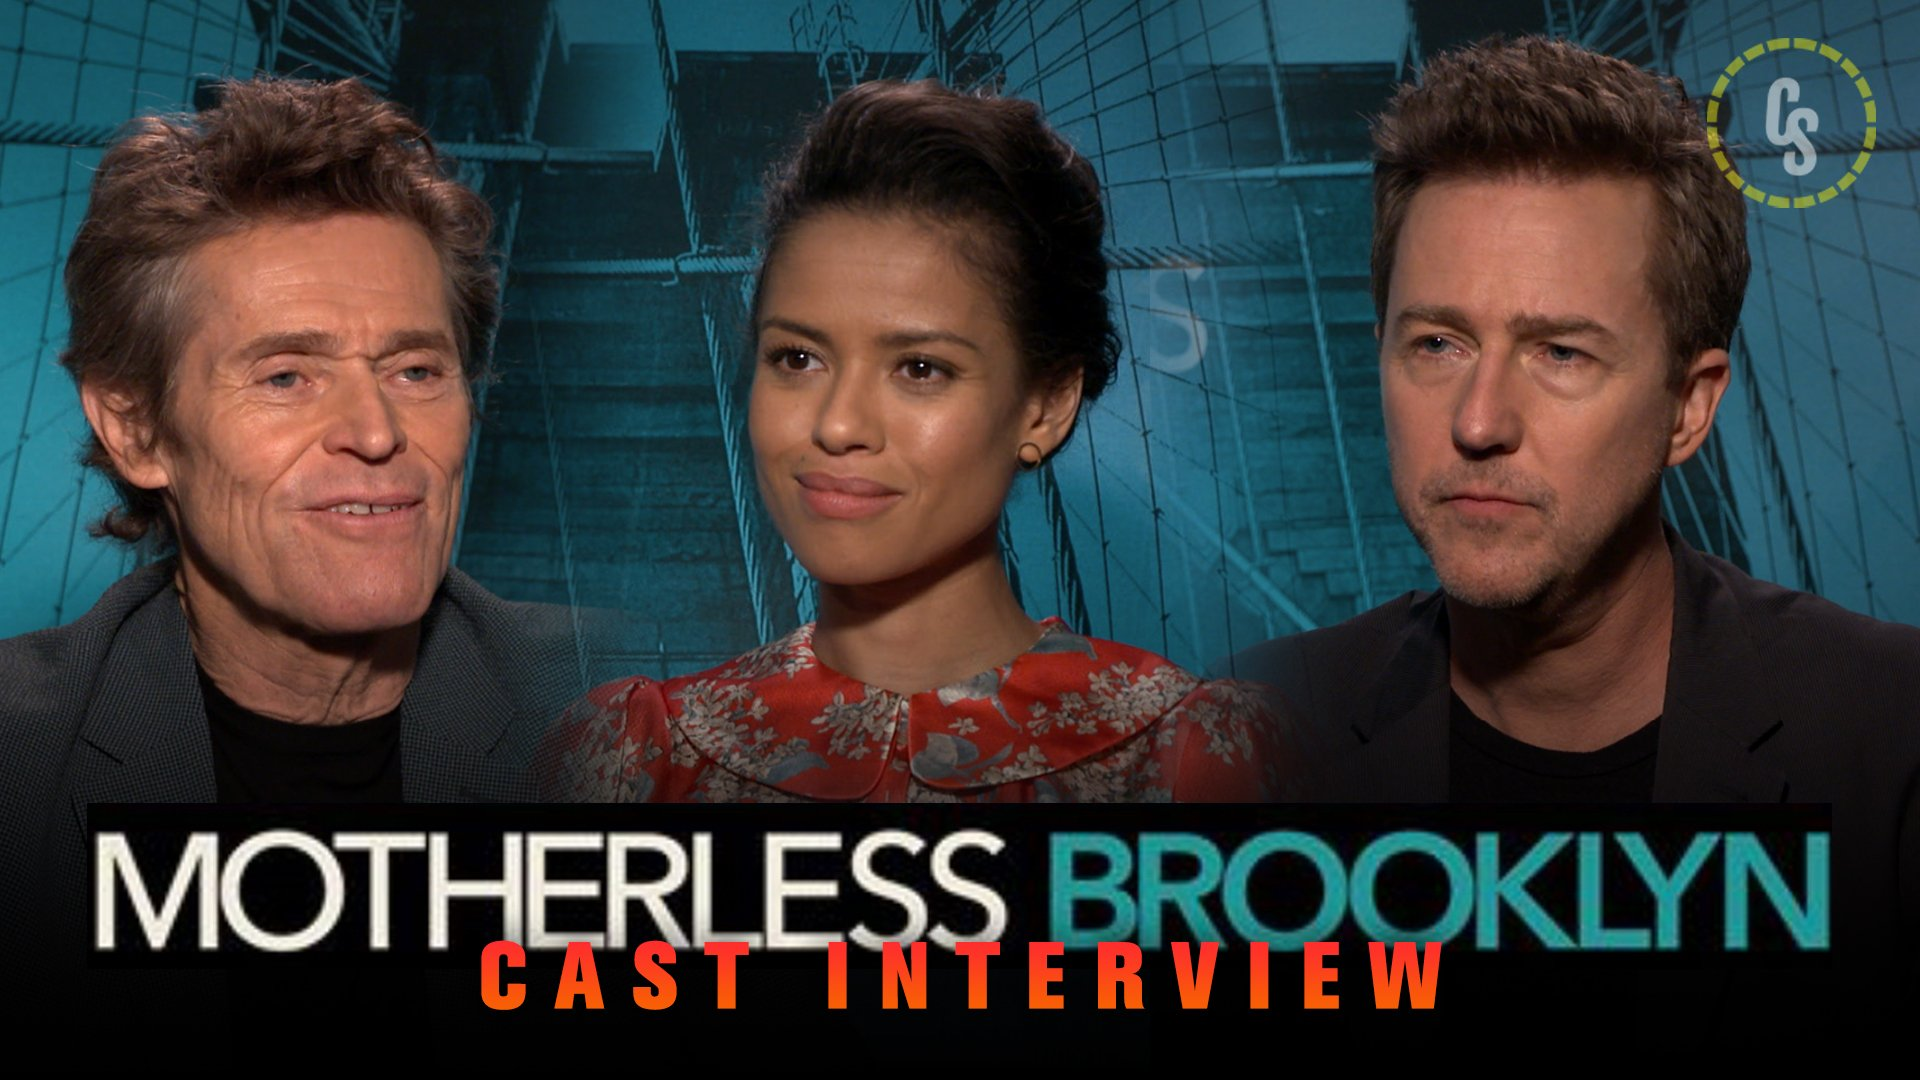 CS Video: Edward Norton and the Motherless Brooklyn Cast